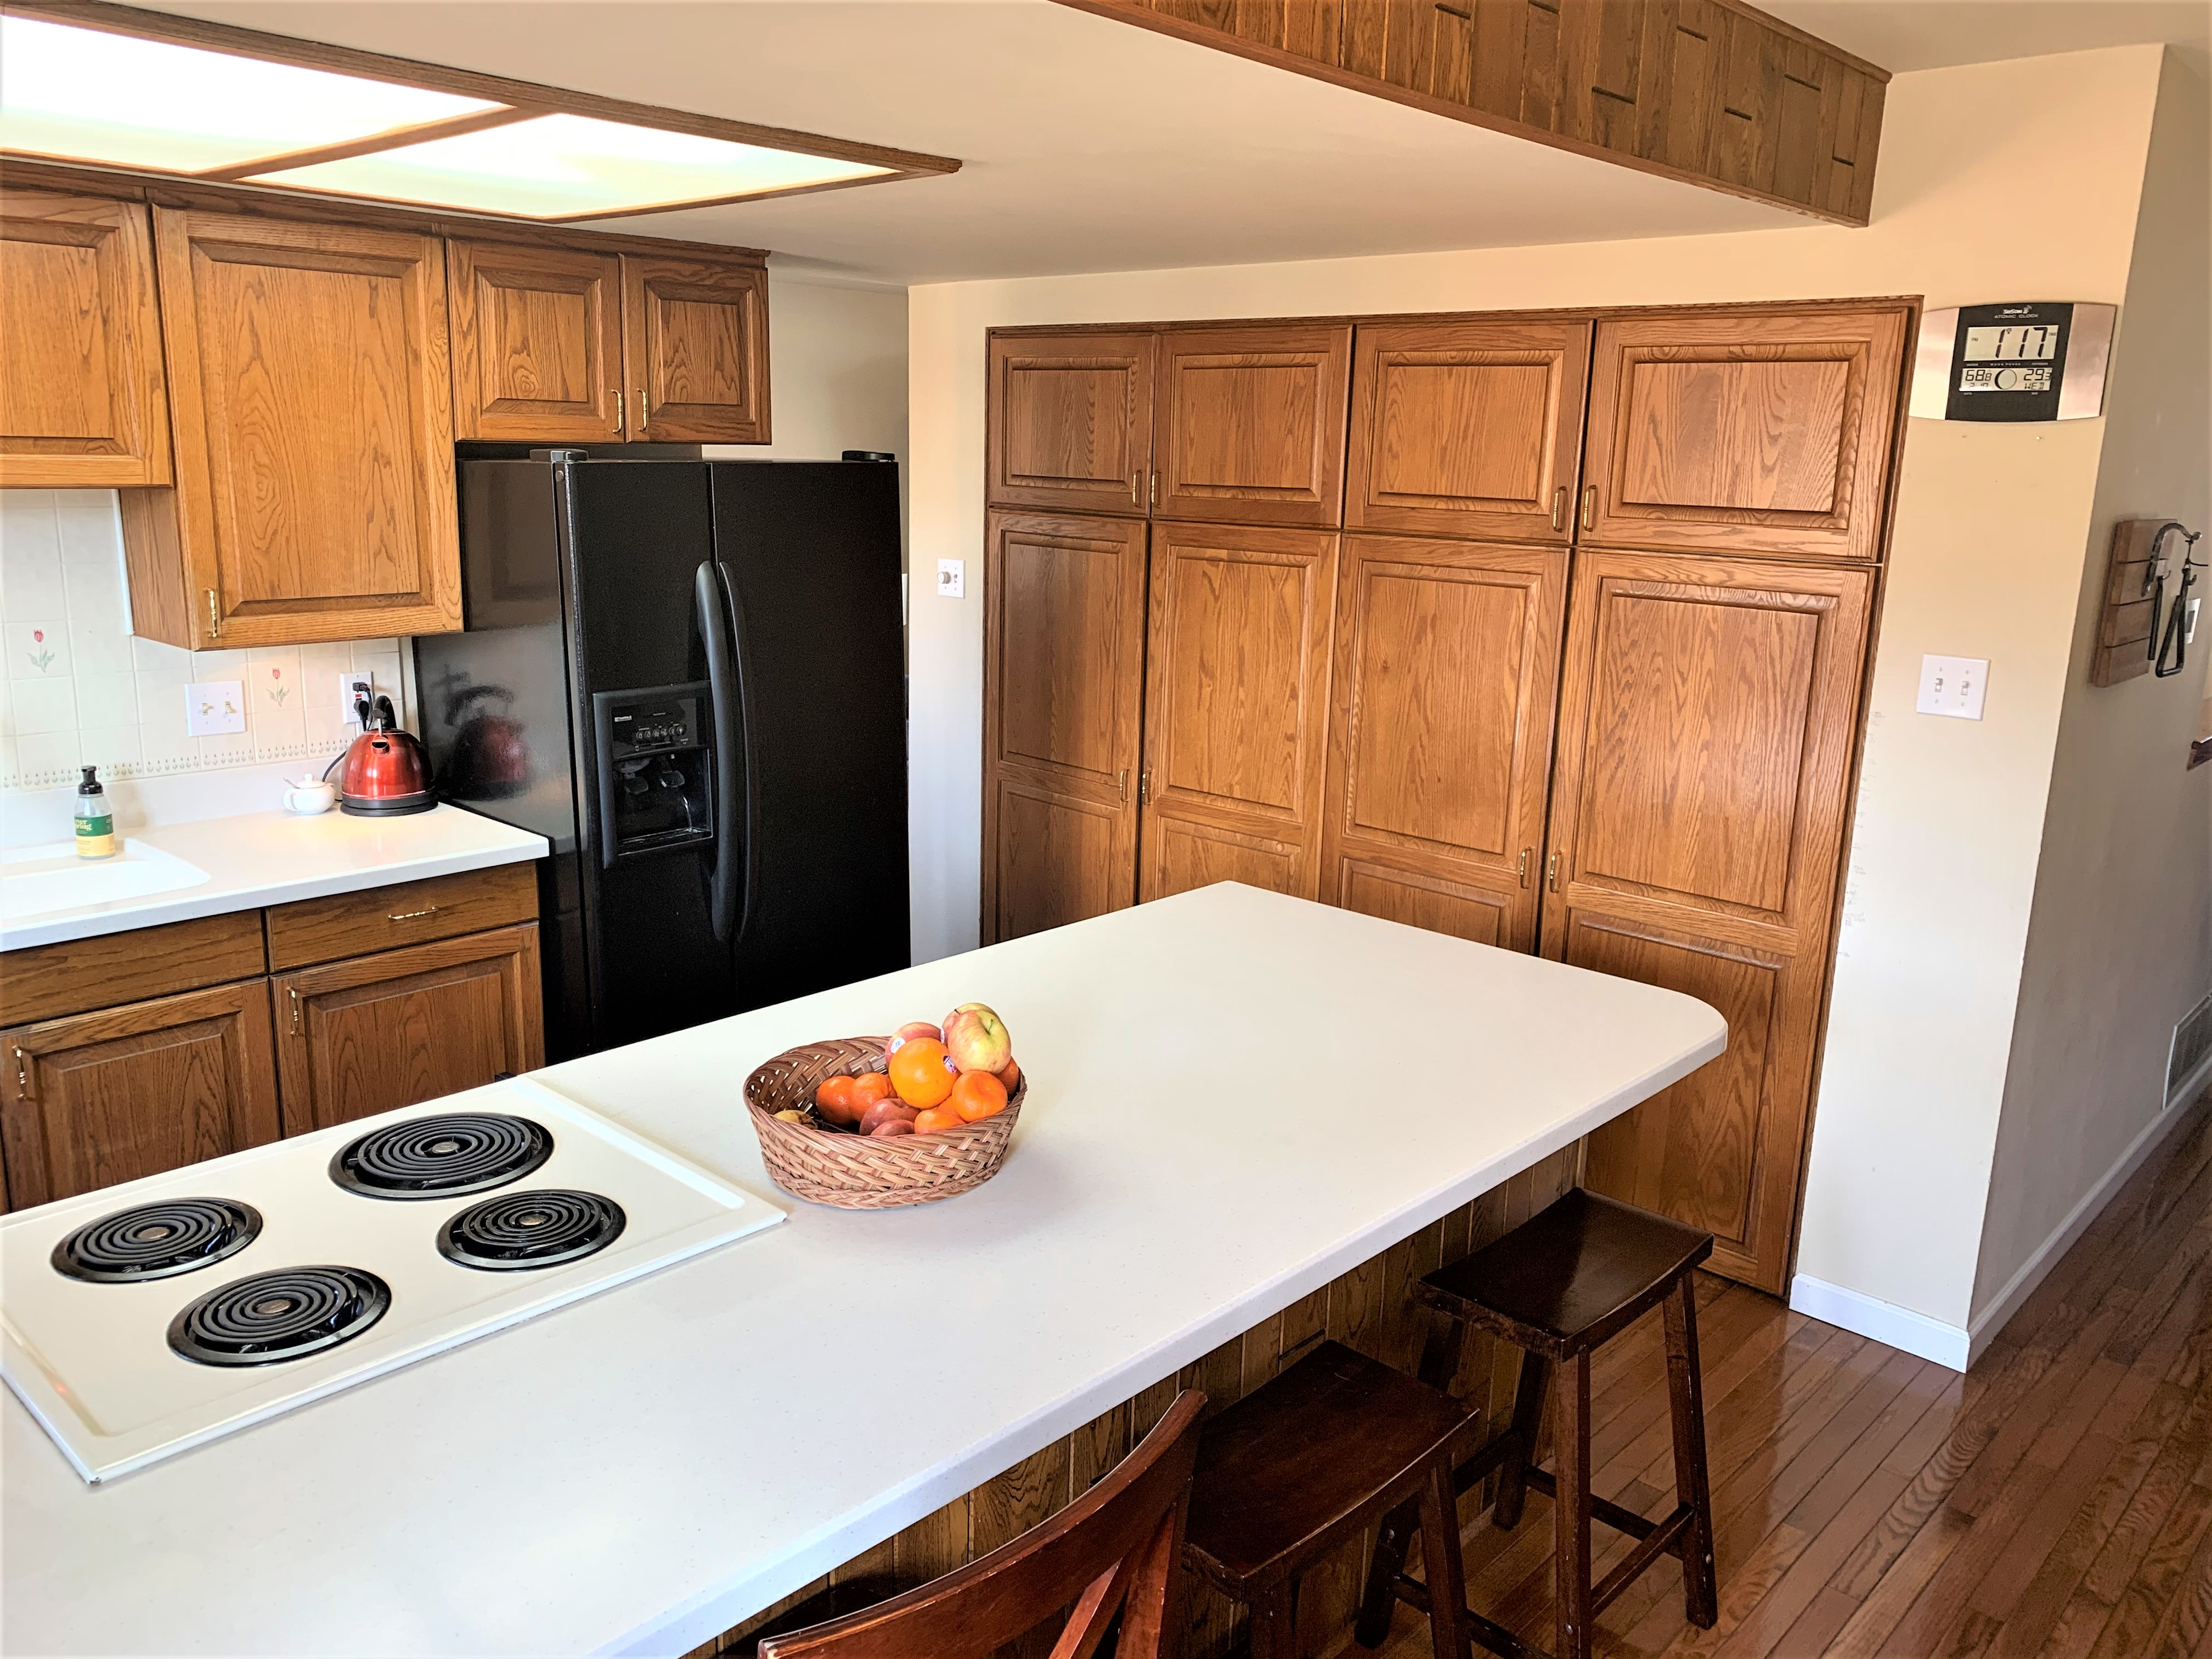 Lot of Quality Cabinets